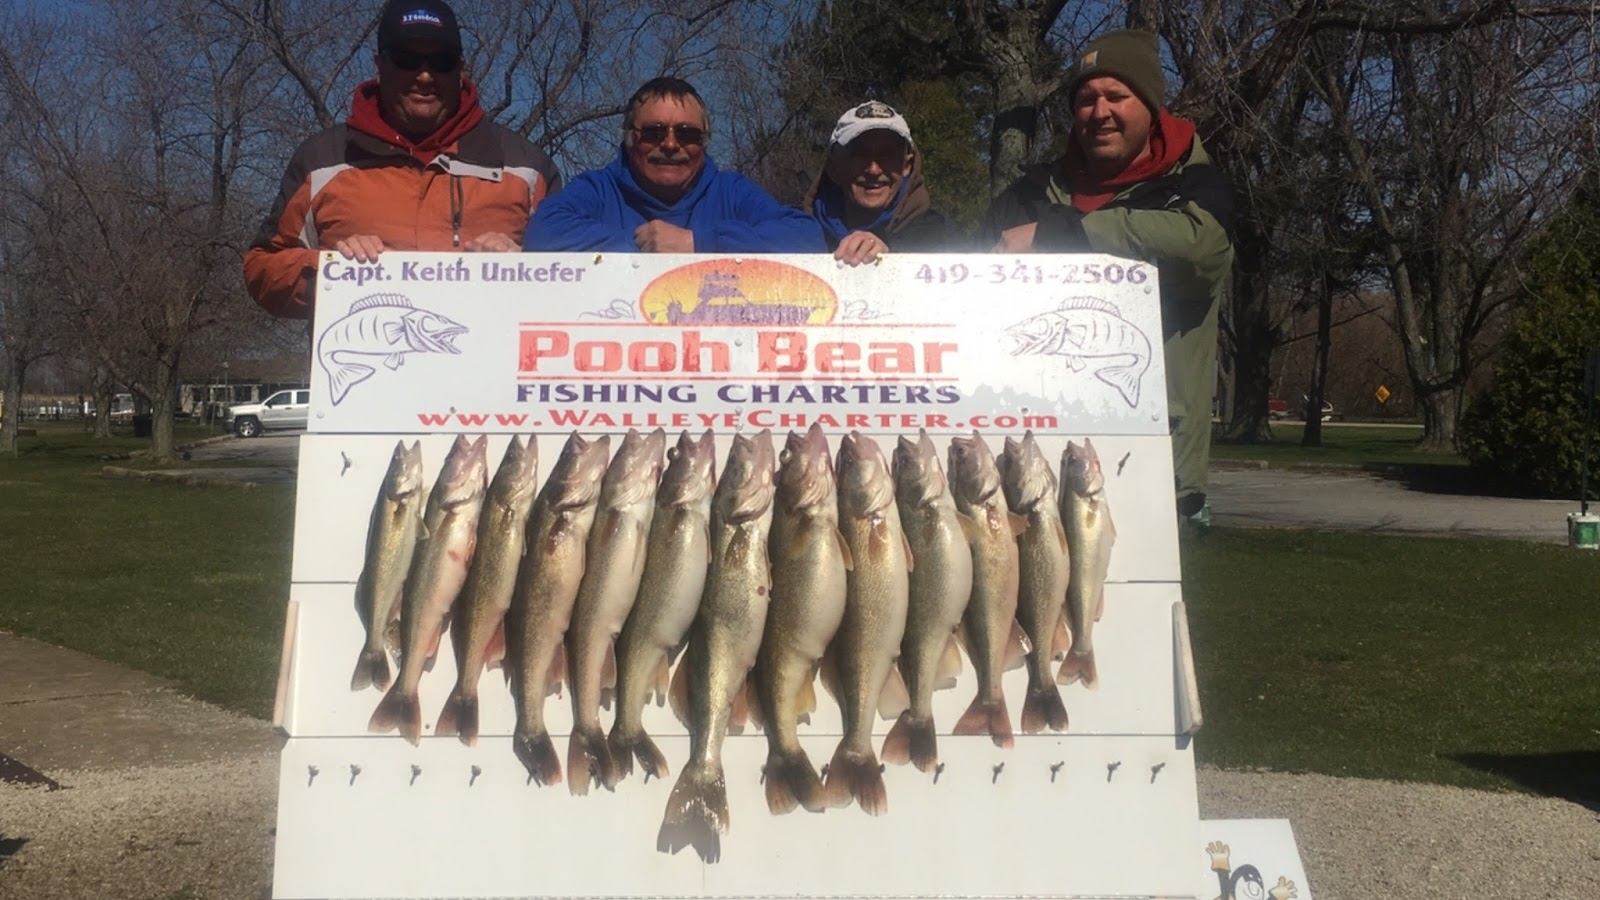 Lake erie walleye fishing reports april 15 17 walleye for Odnr fishing report